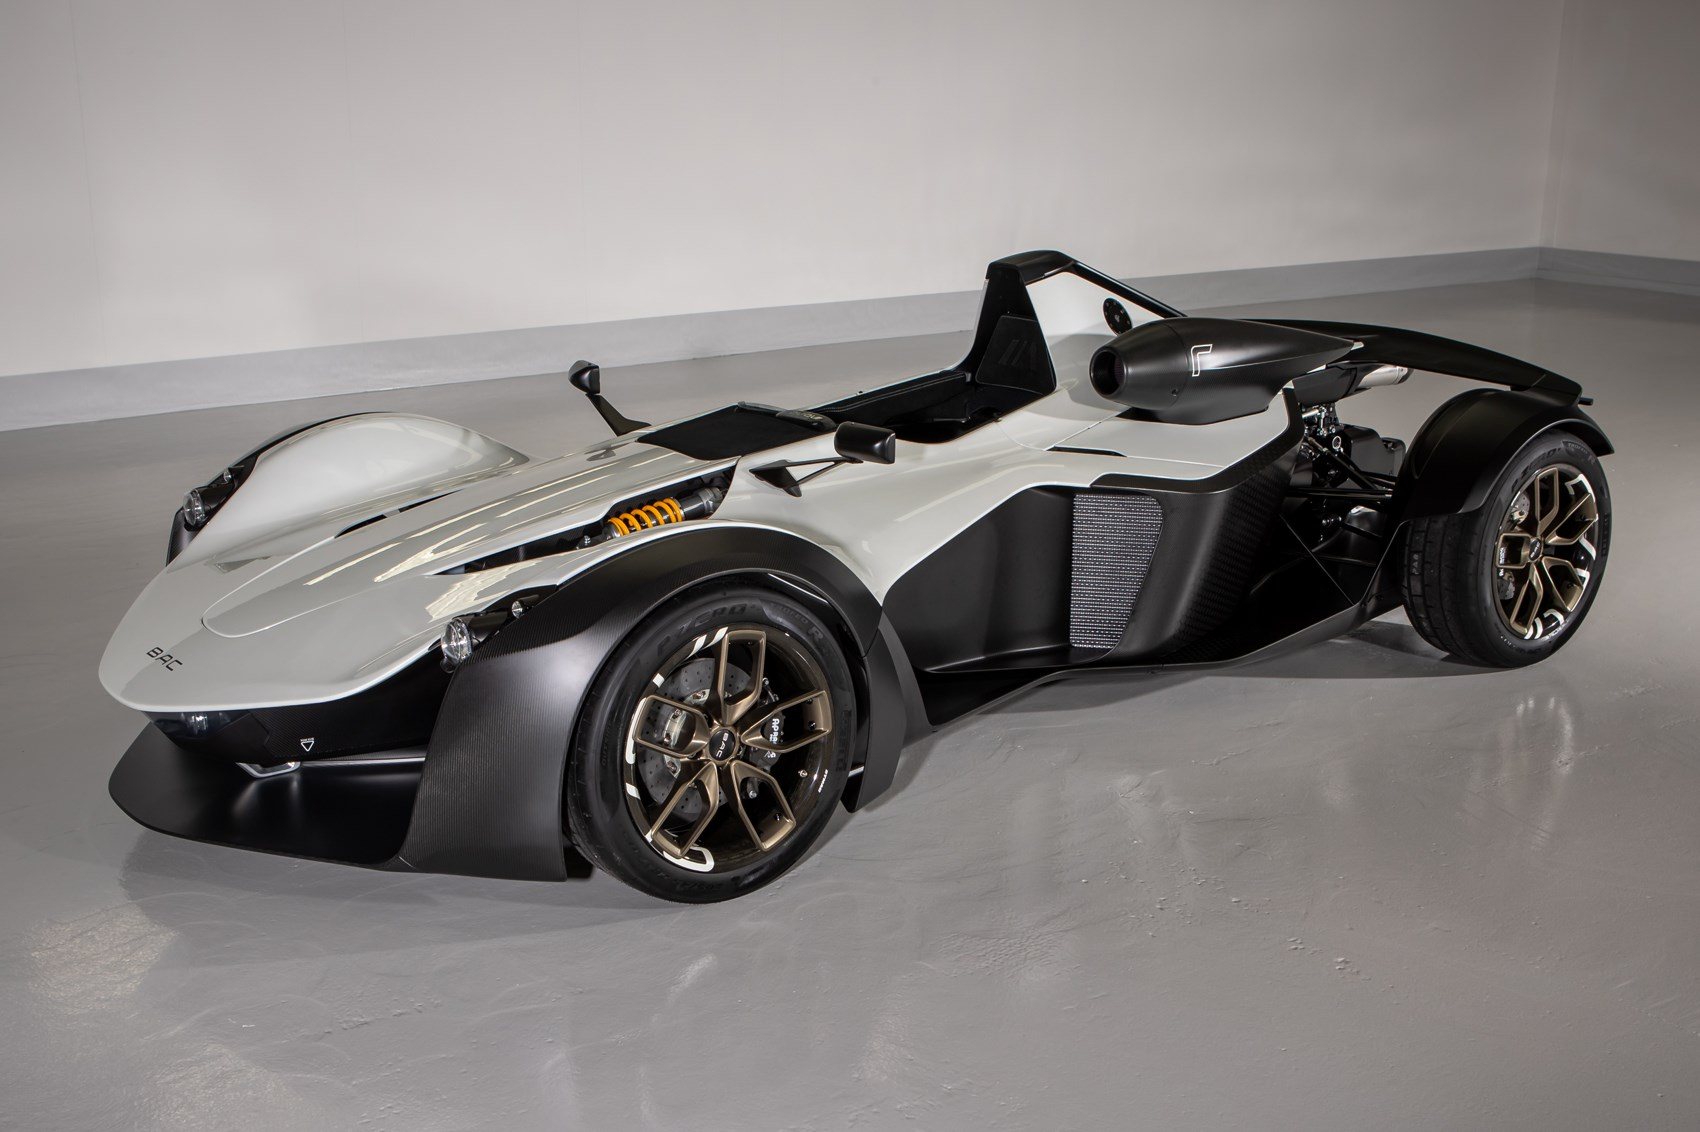 BAC launches new Mono R